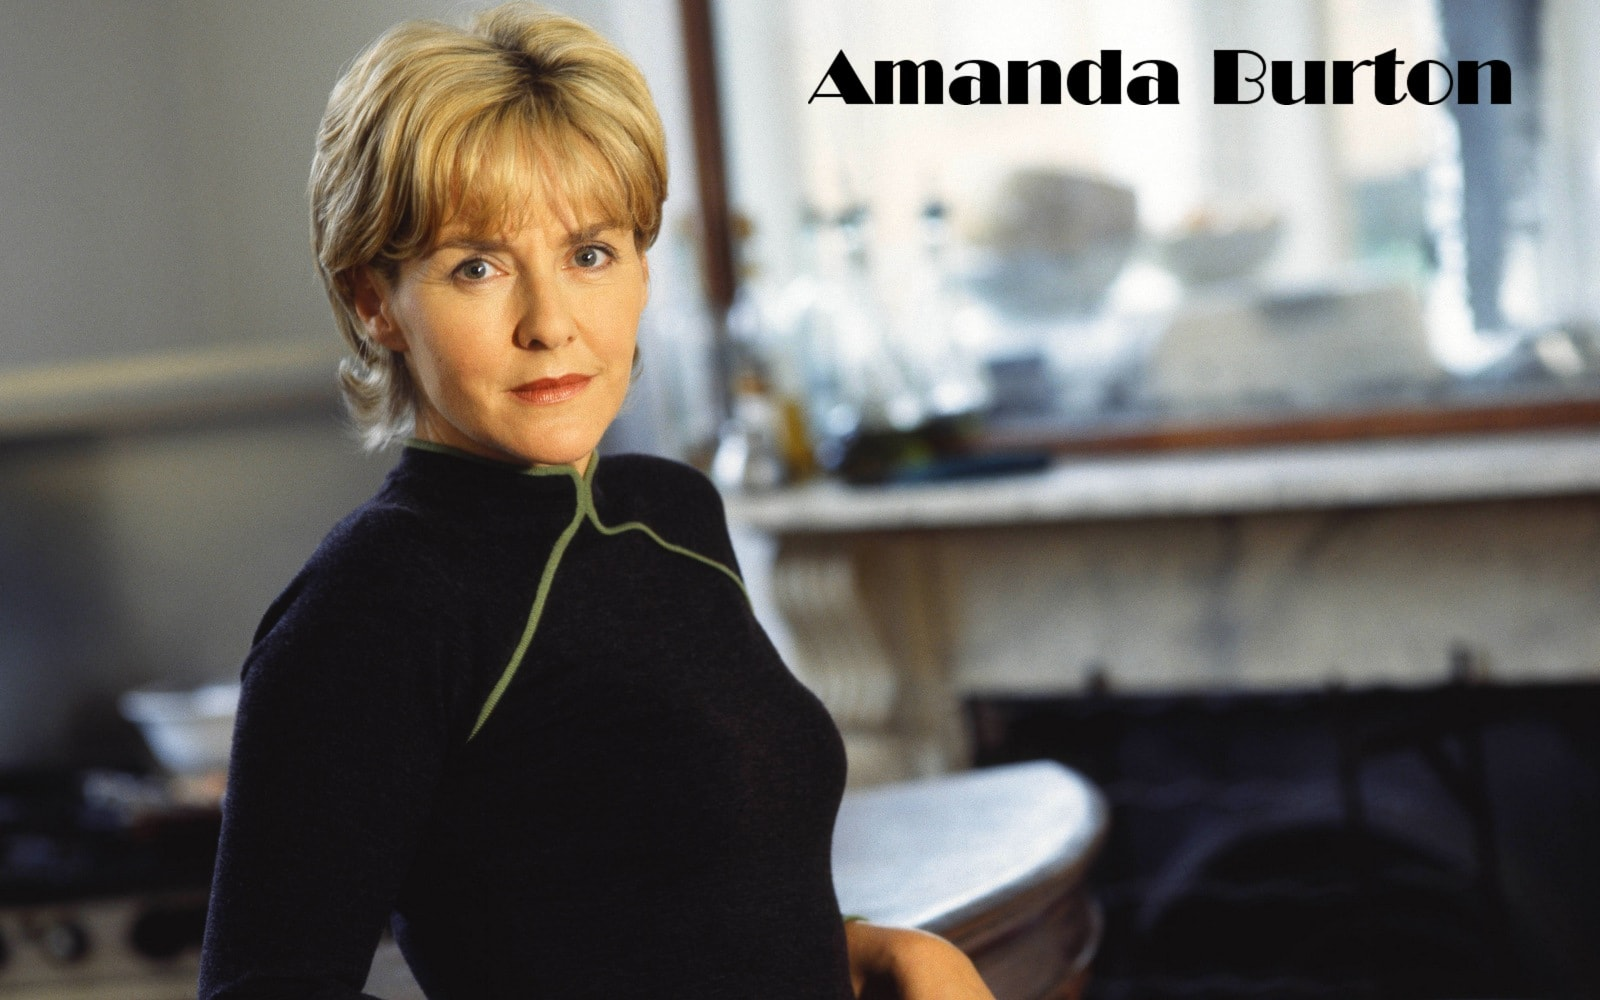 Amanda Burton HQ wallpapers